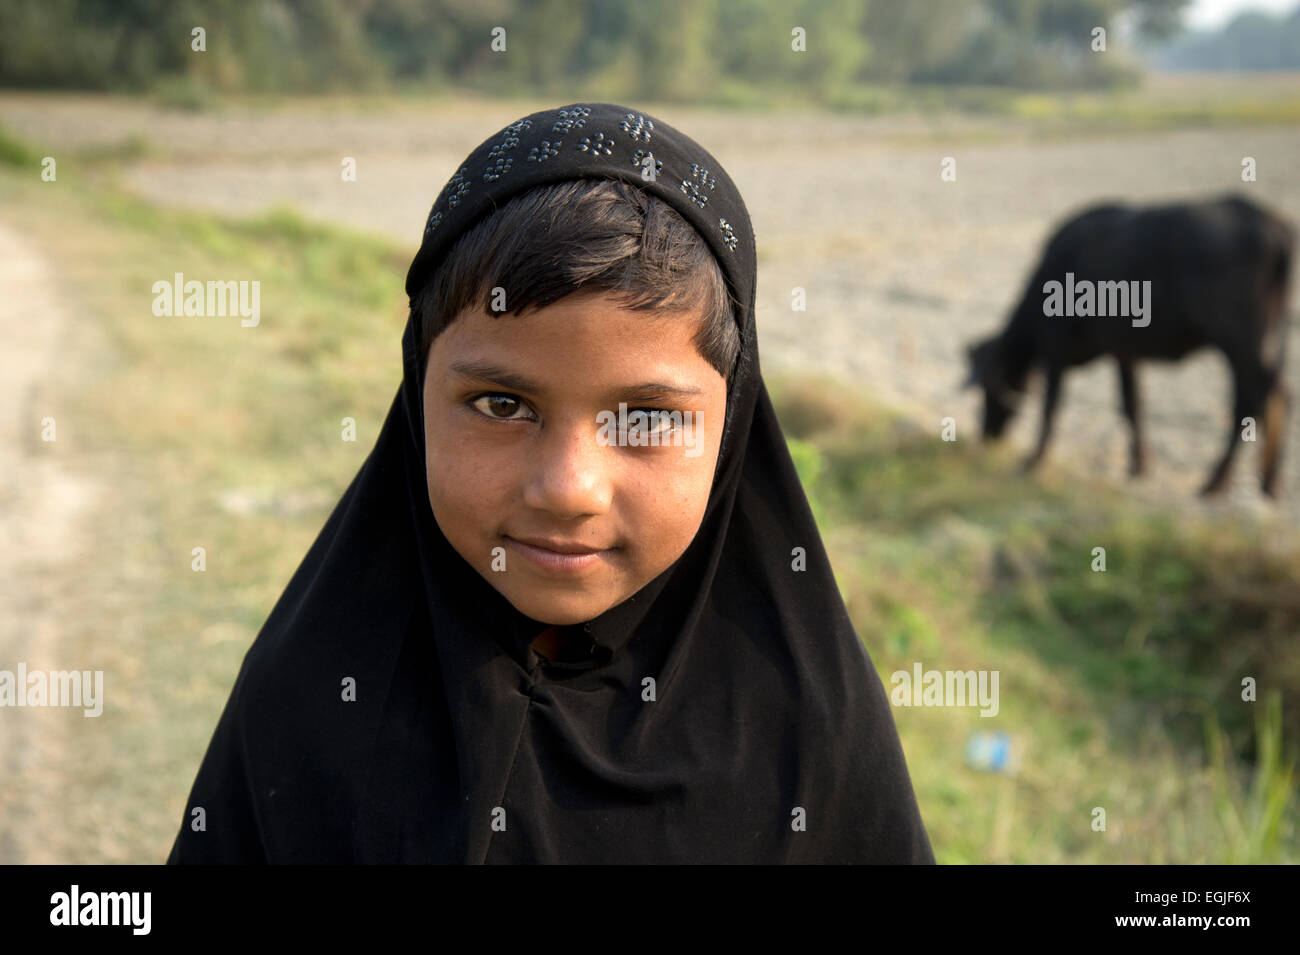 Bihar. India. Mastichak village. A  young Muslim girl wearing a black hijab. - Stock Image